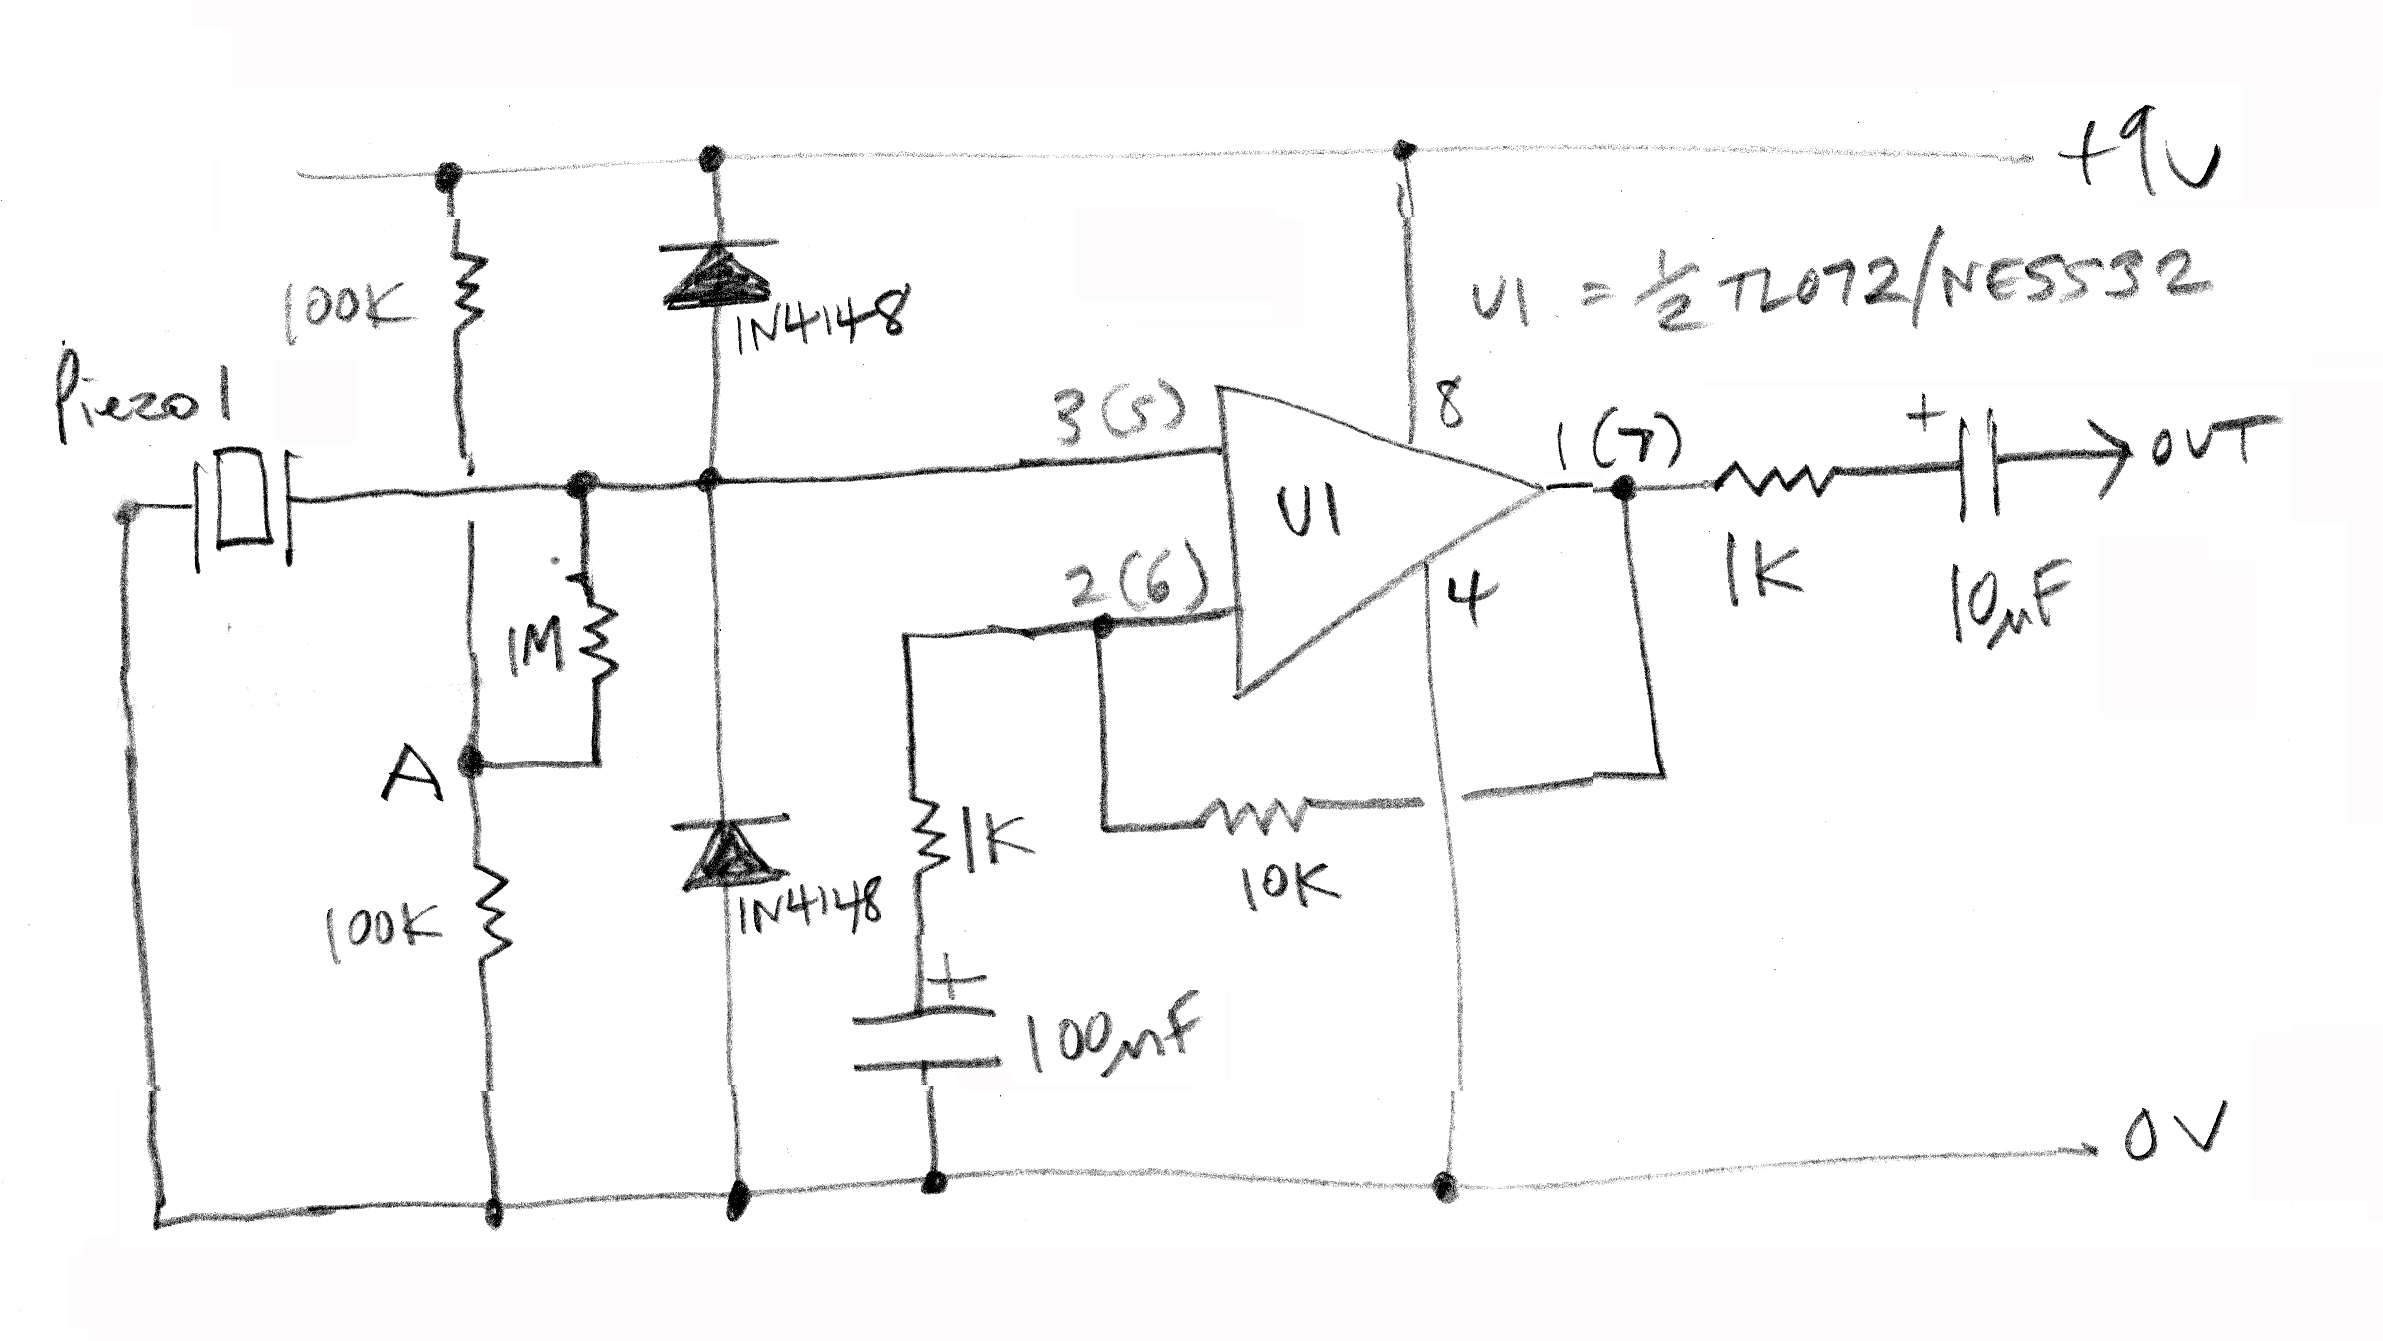 Tl072 Preamplifier Archives Amplifier Circuit Design